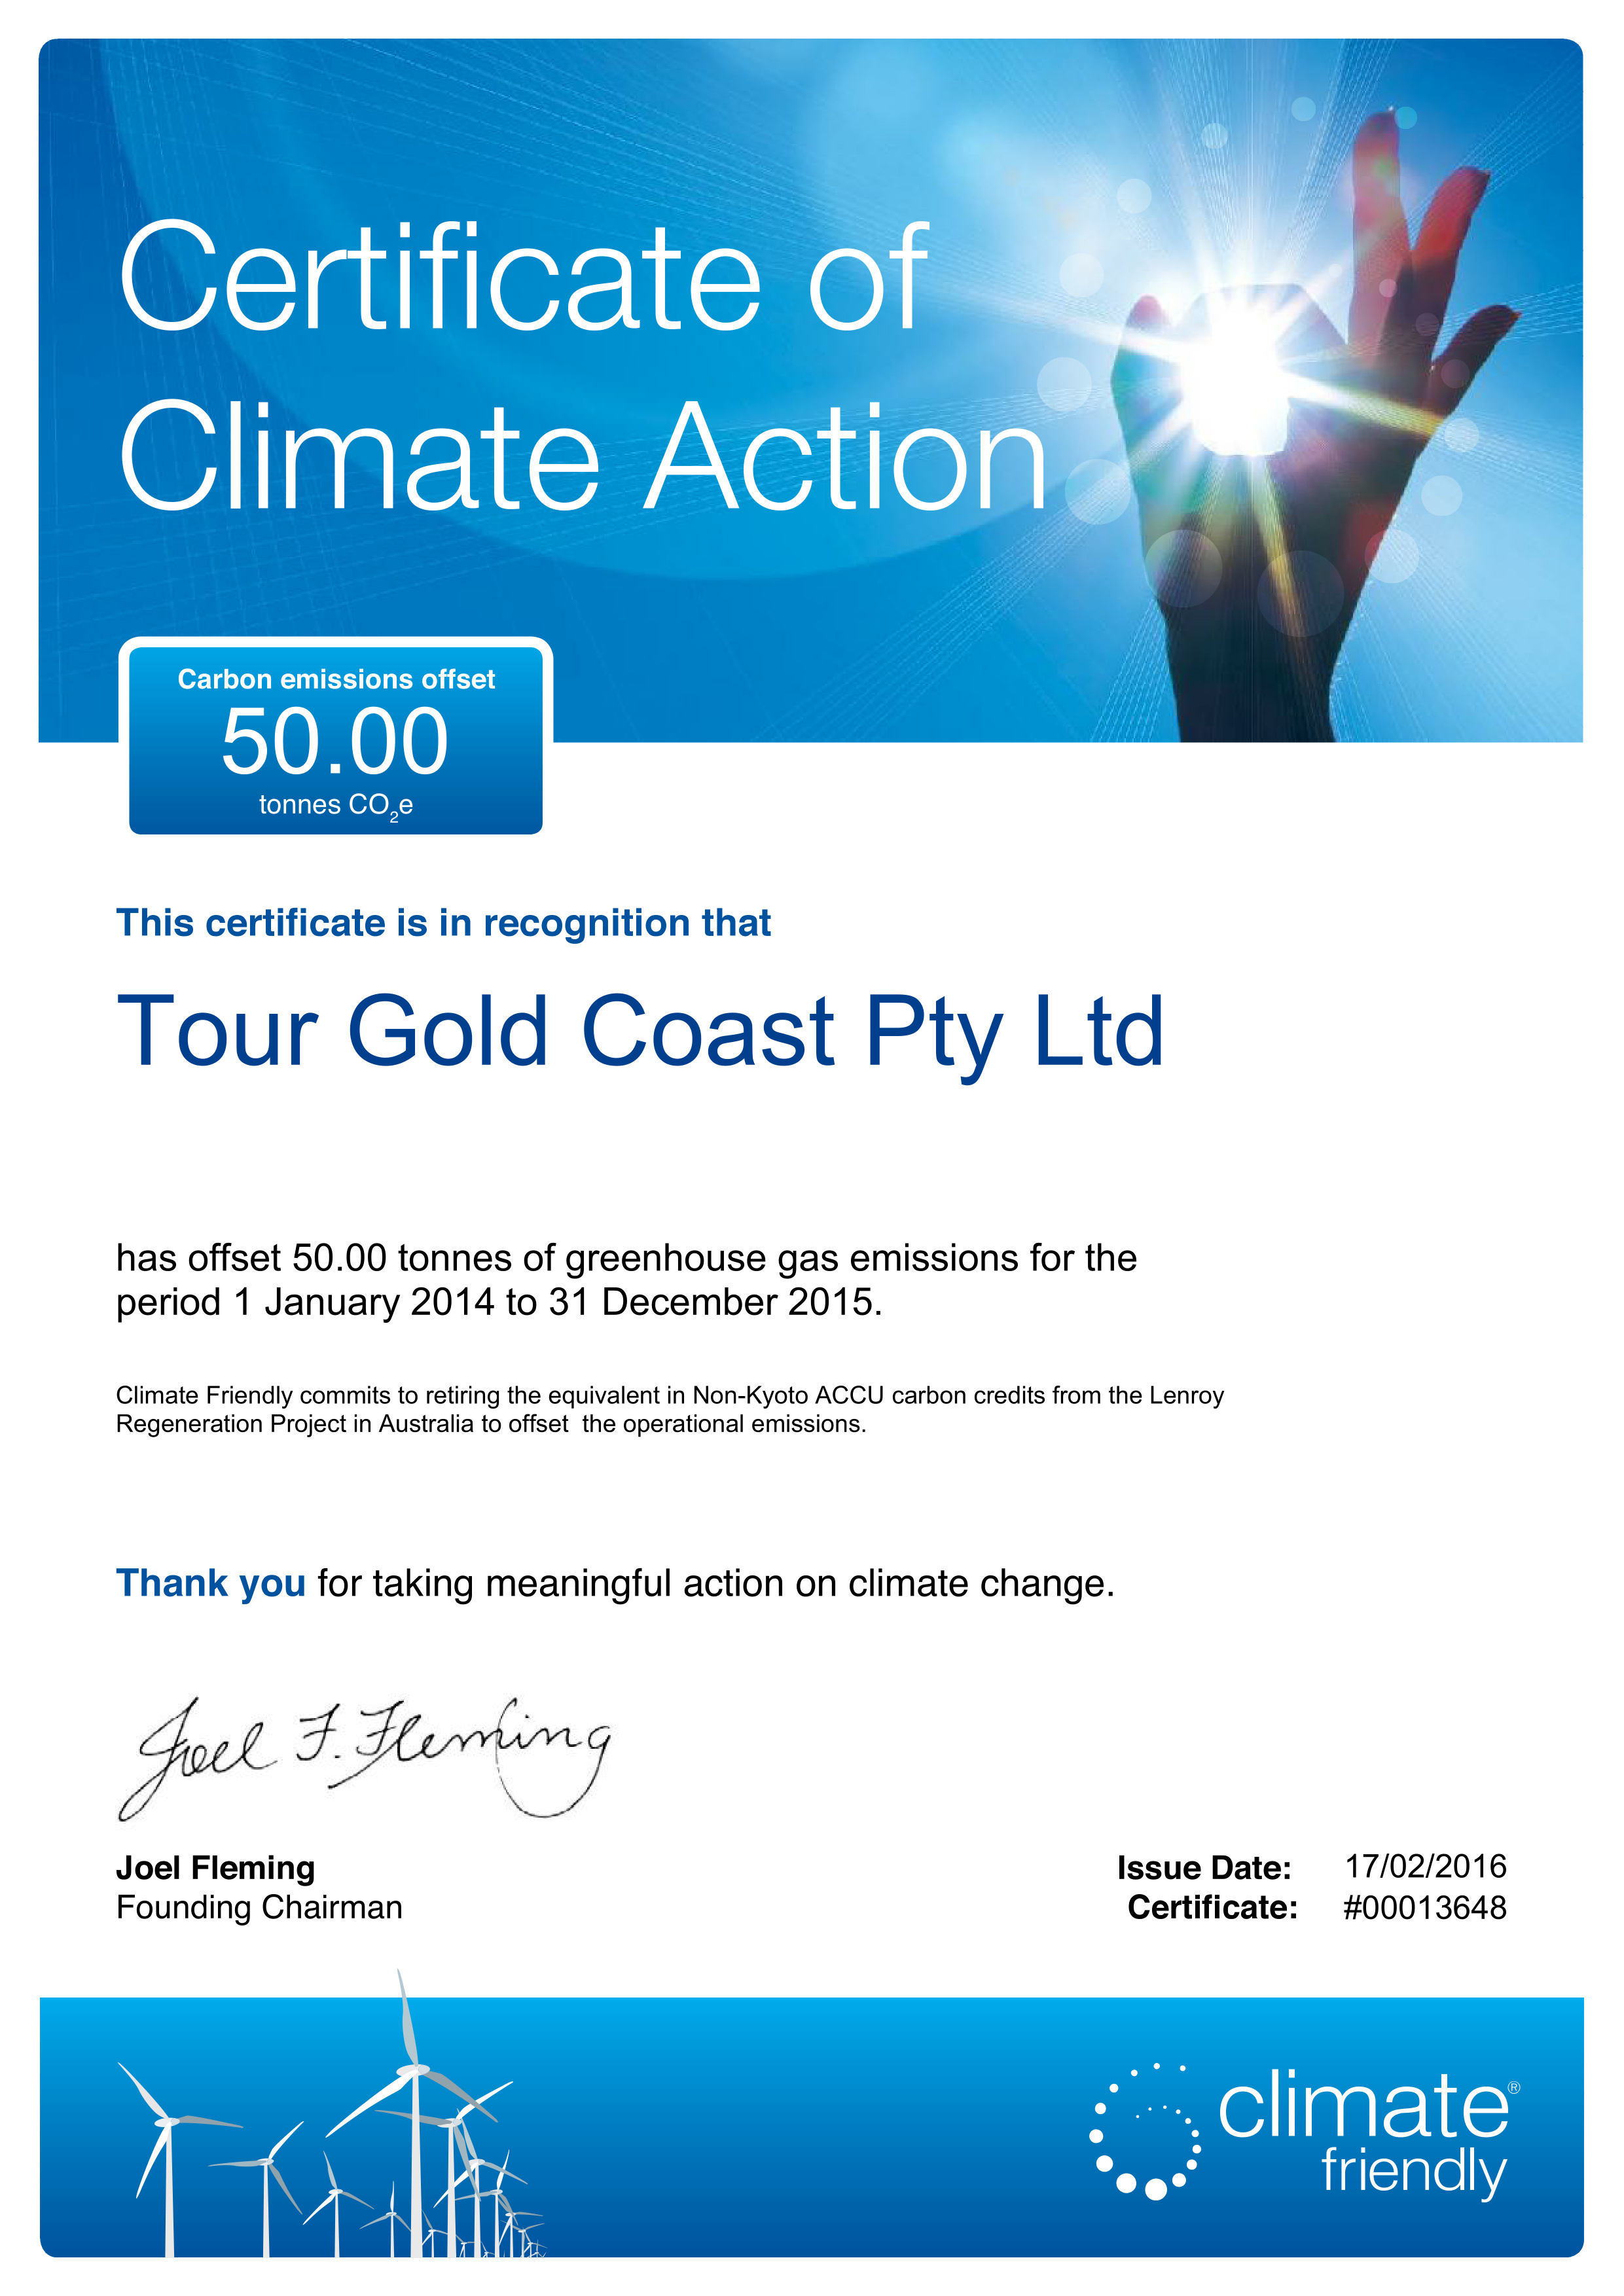 The greenhouse gold coast - Climate Friendly_certificate 13648_imgs 0001